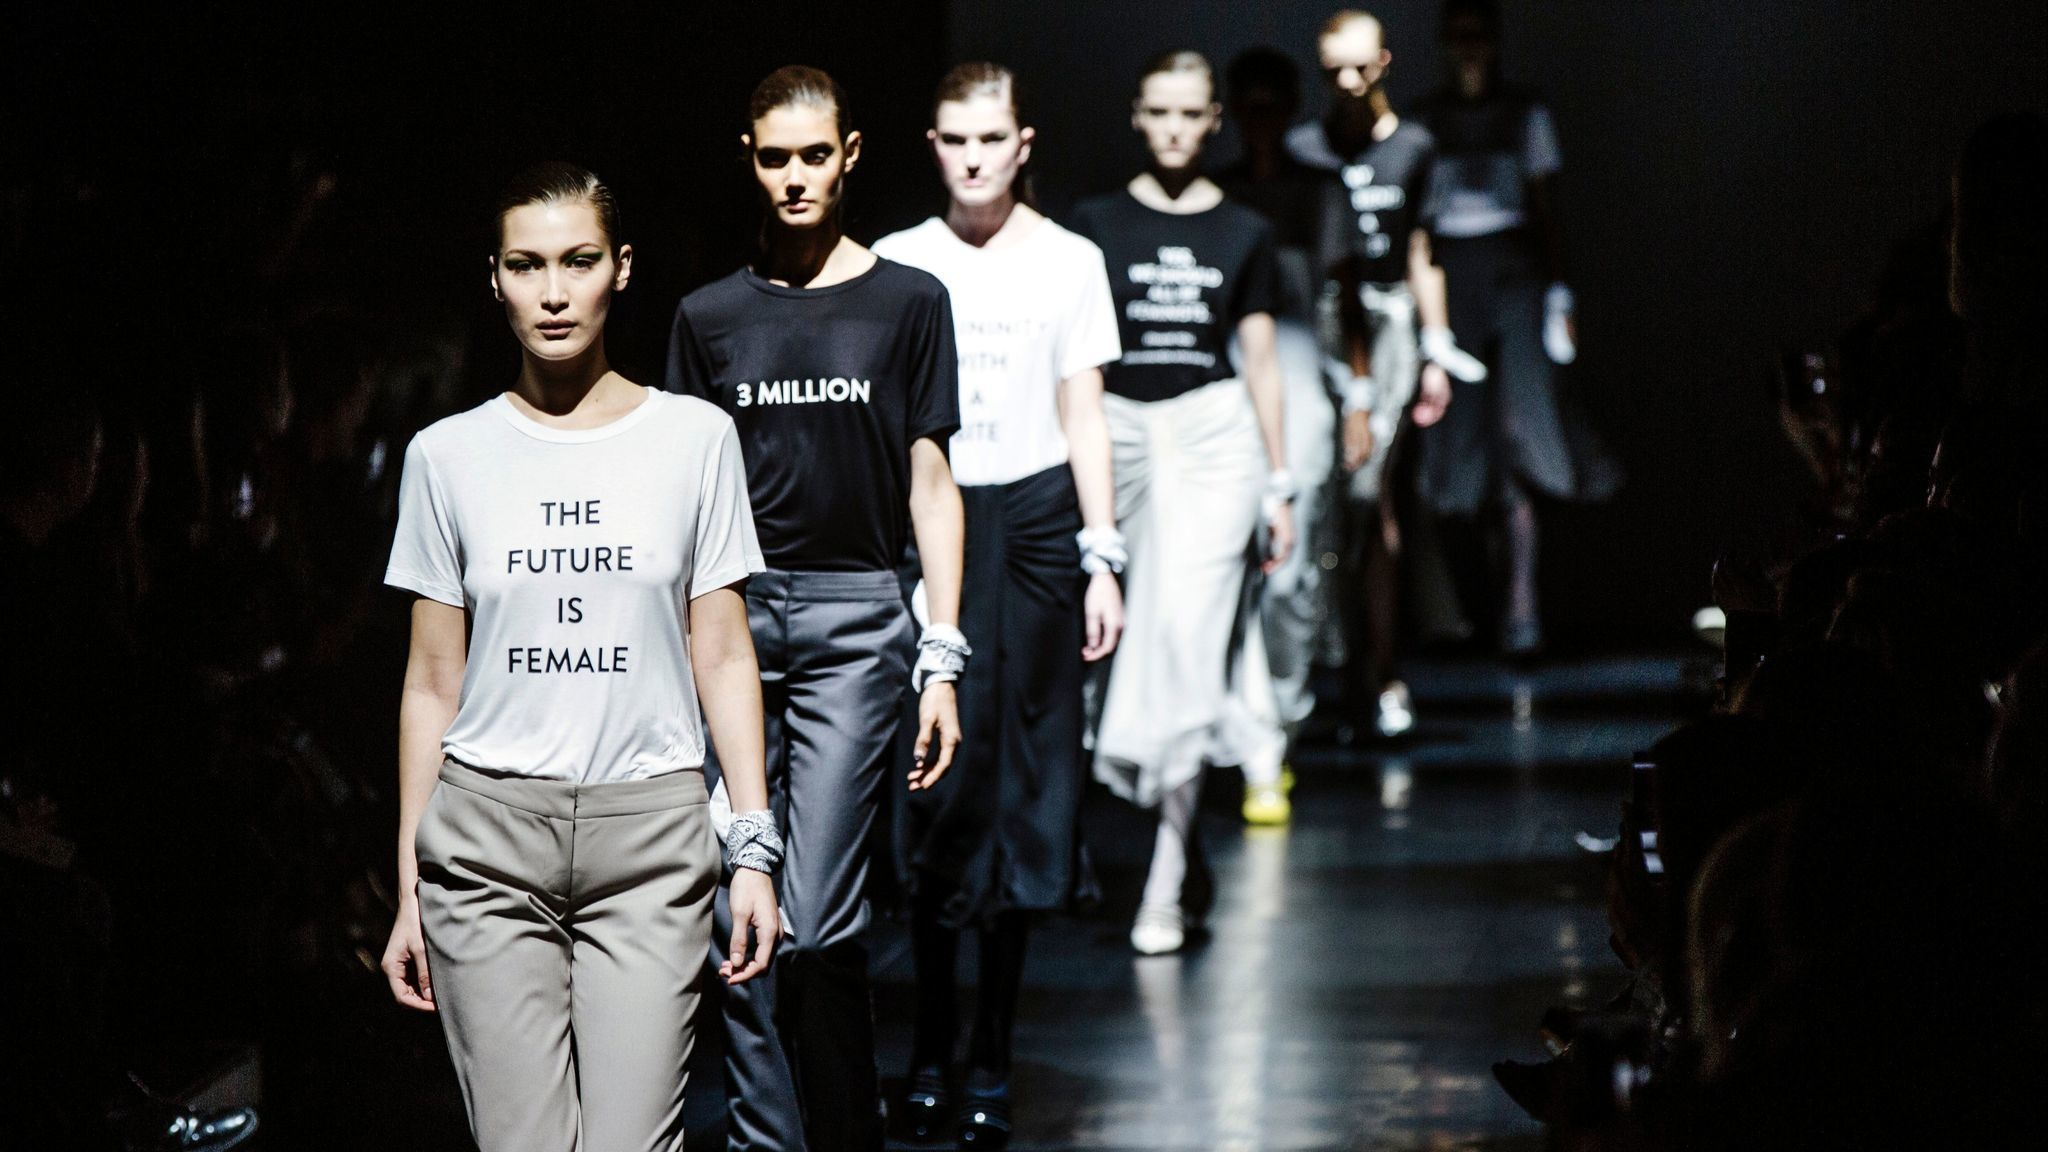 In this new era, politics is on trend on the runways at ...